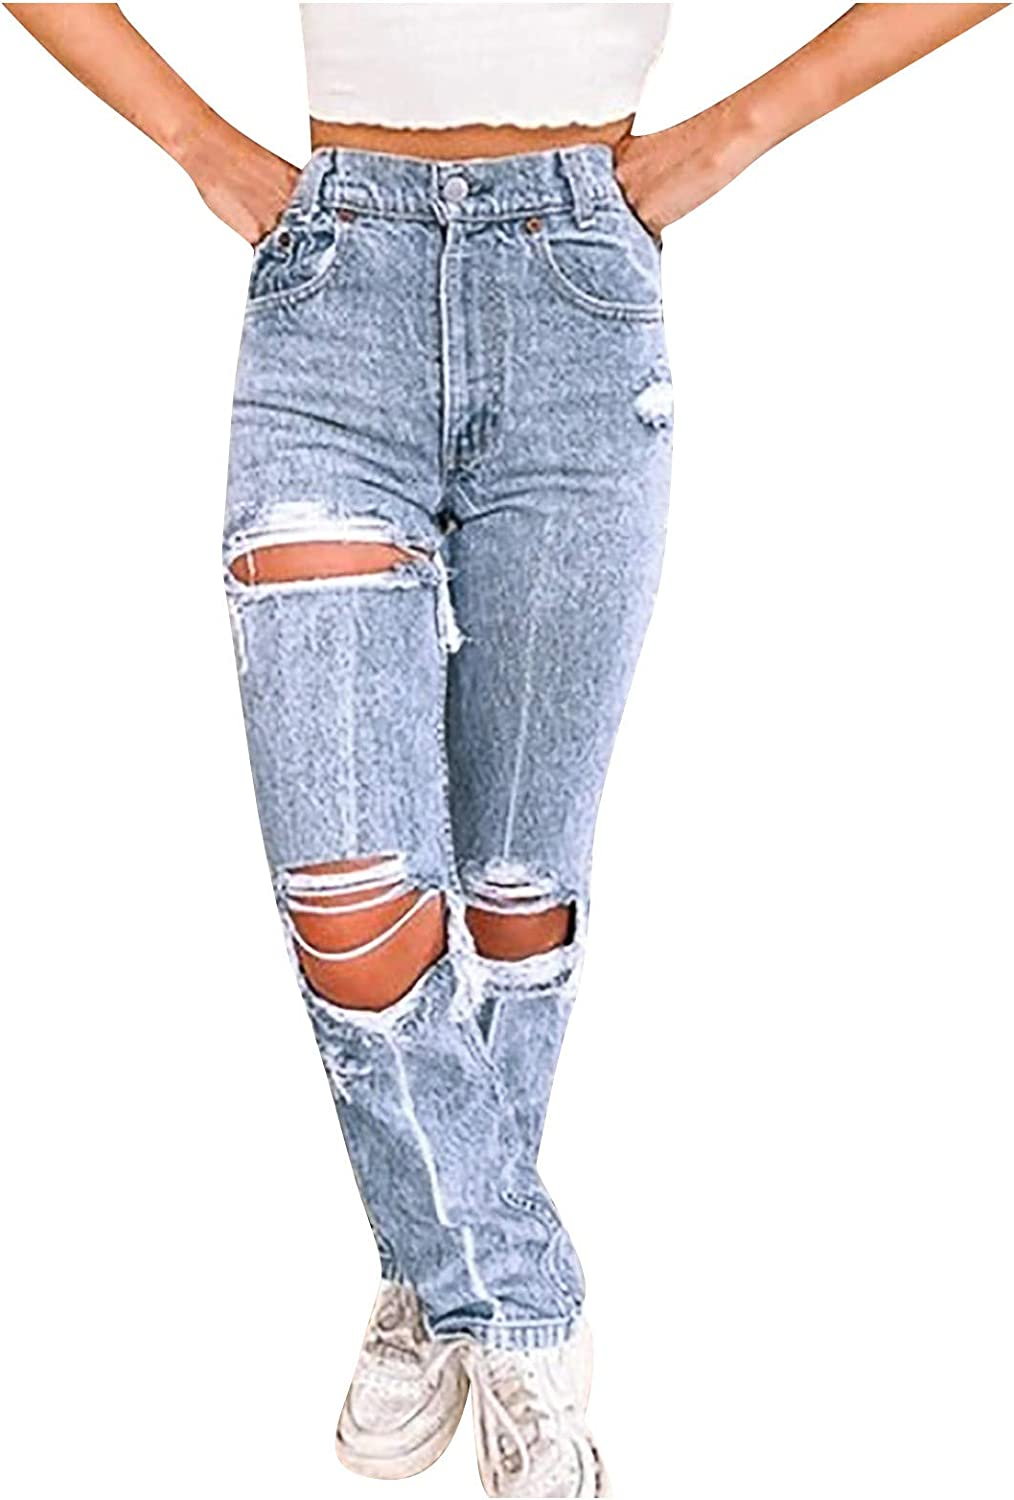 FUNEY Plus Size Baggy Ripped Hole Loose Straight Pants Beggar Jeans for Women Hight Waisted Distressed Denim Pants